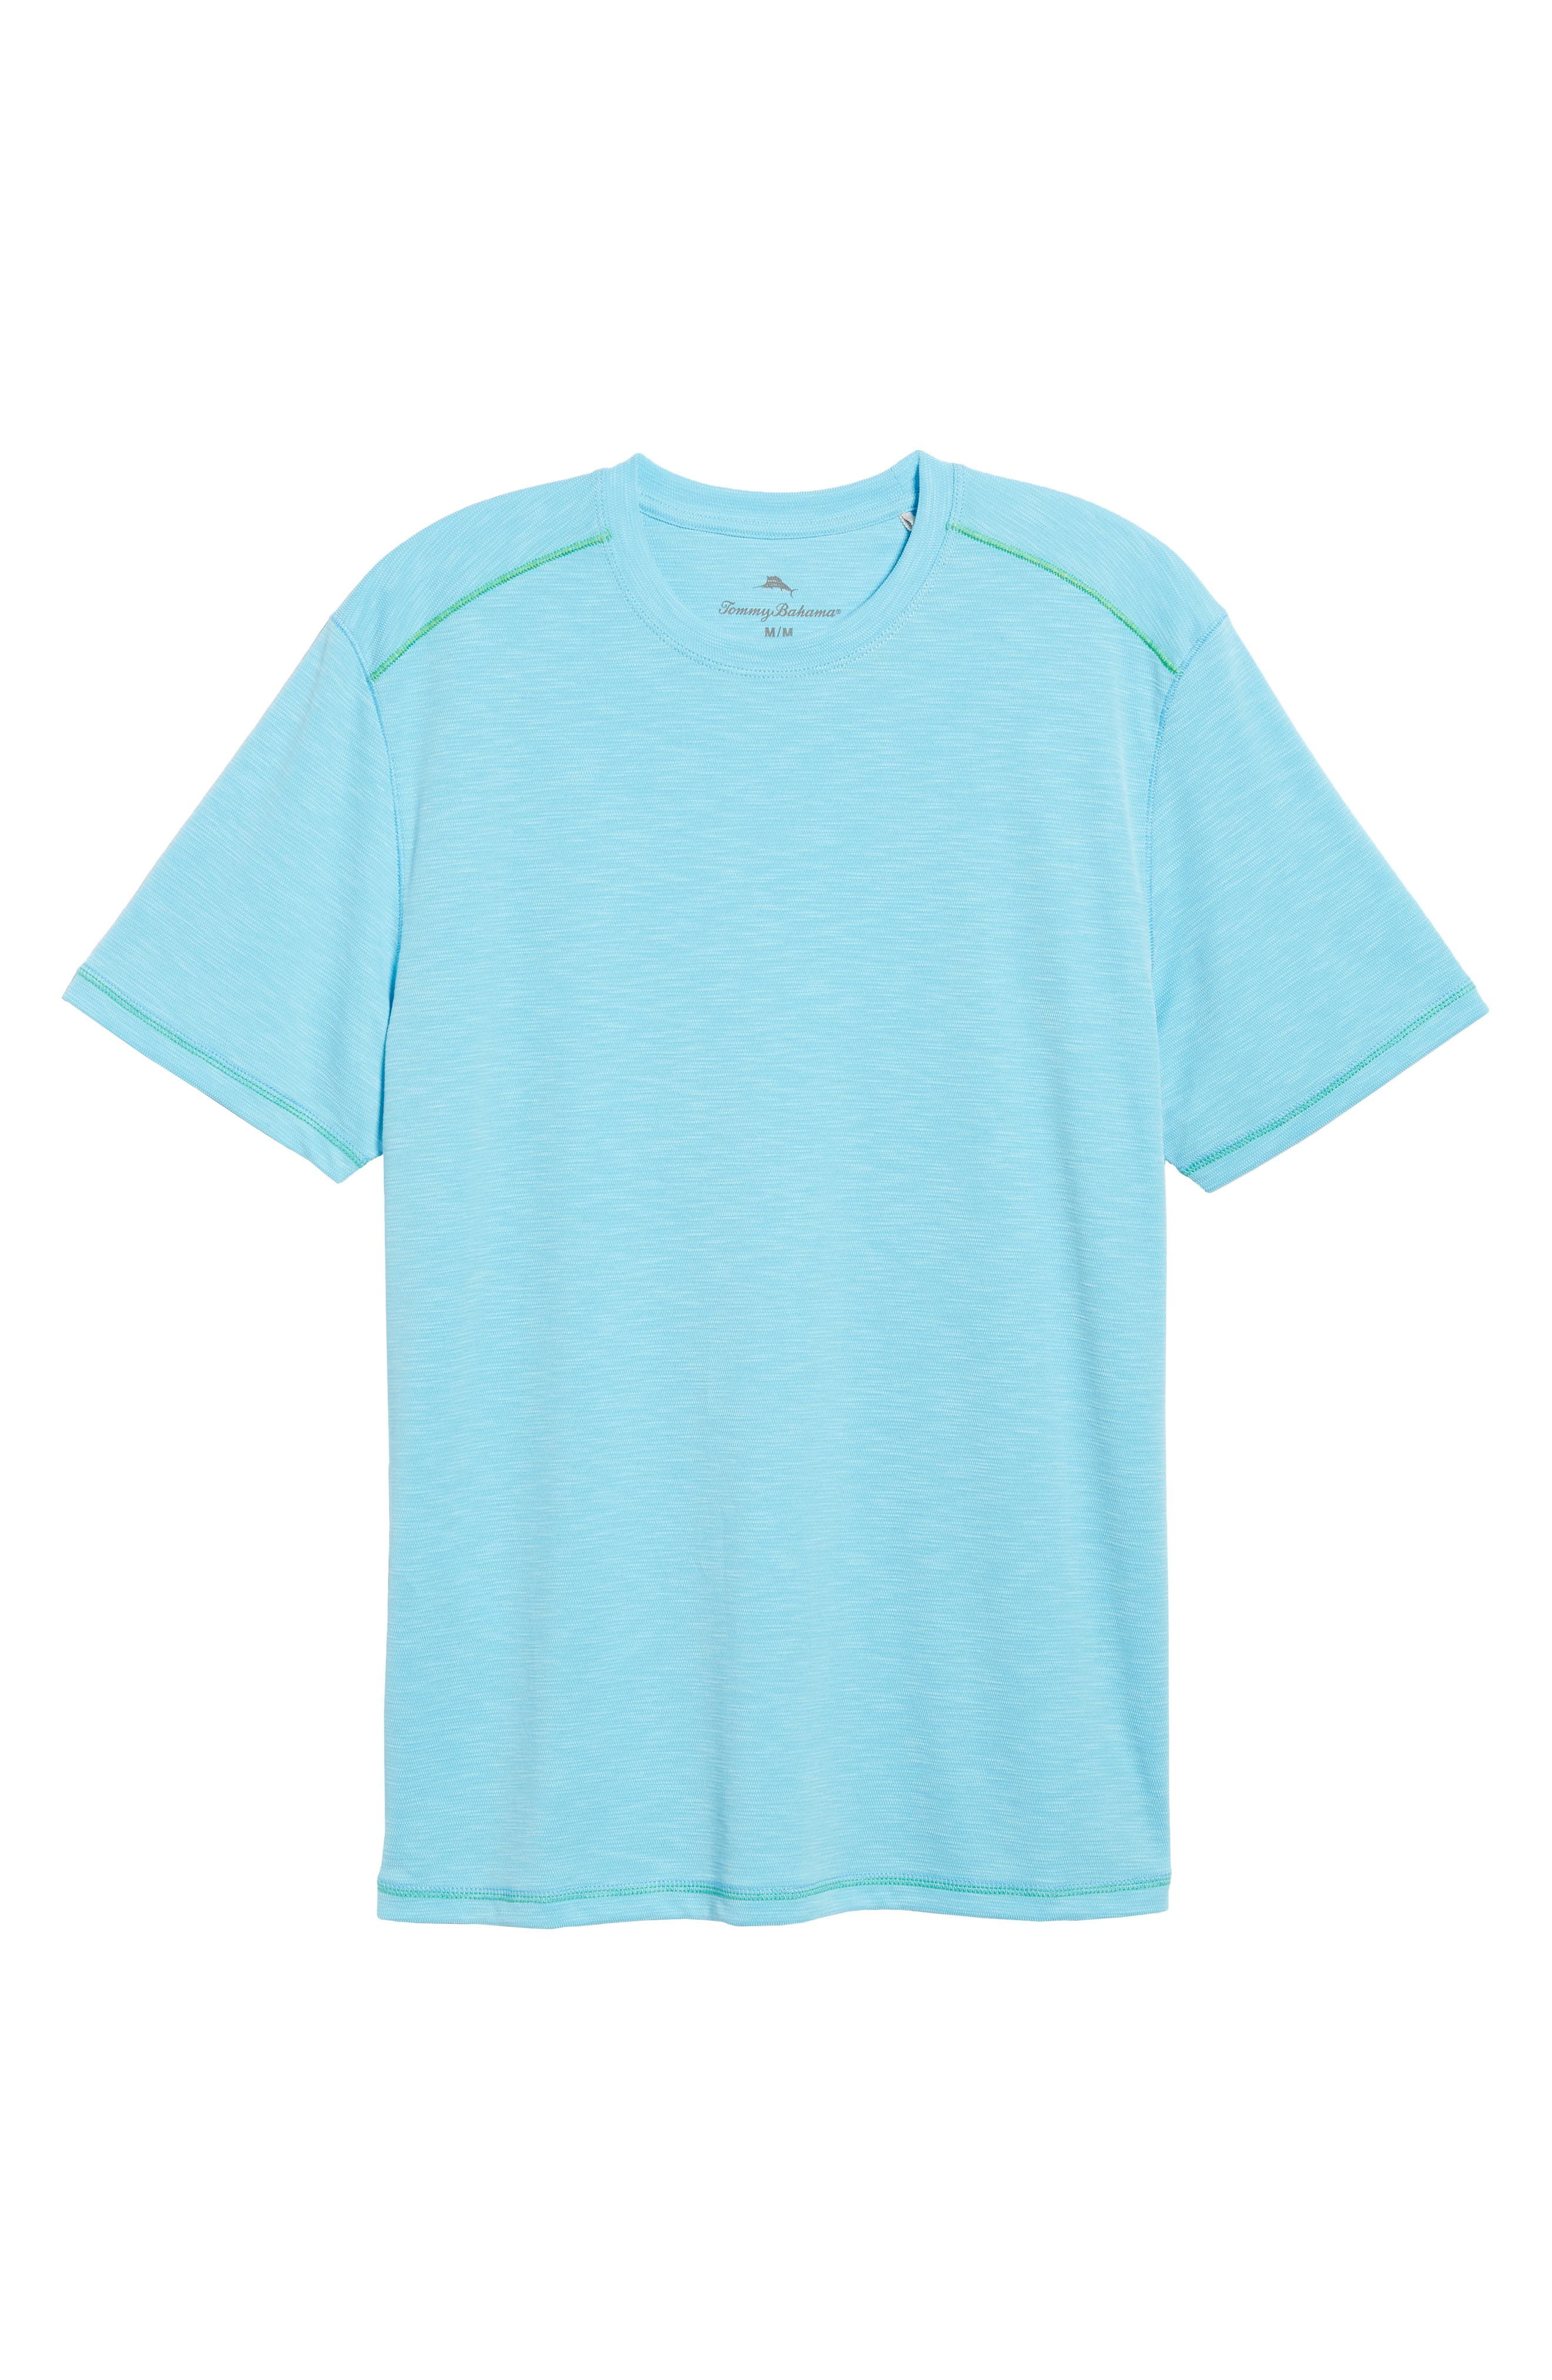 'Paradise Around' Crewneck T-Shirt,                             Main thumbnail 1, color,                             Breeze Blue